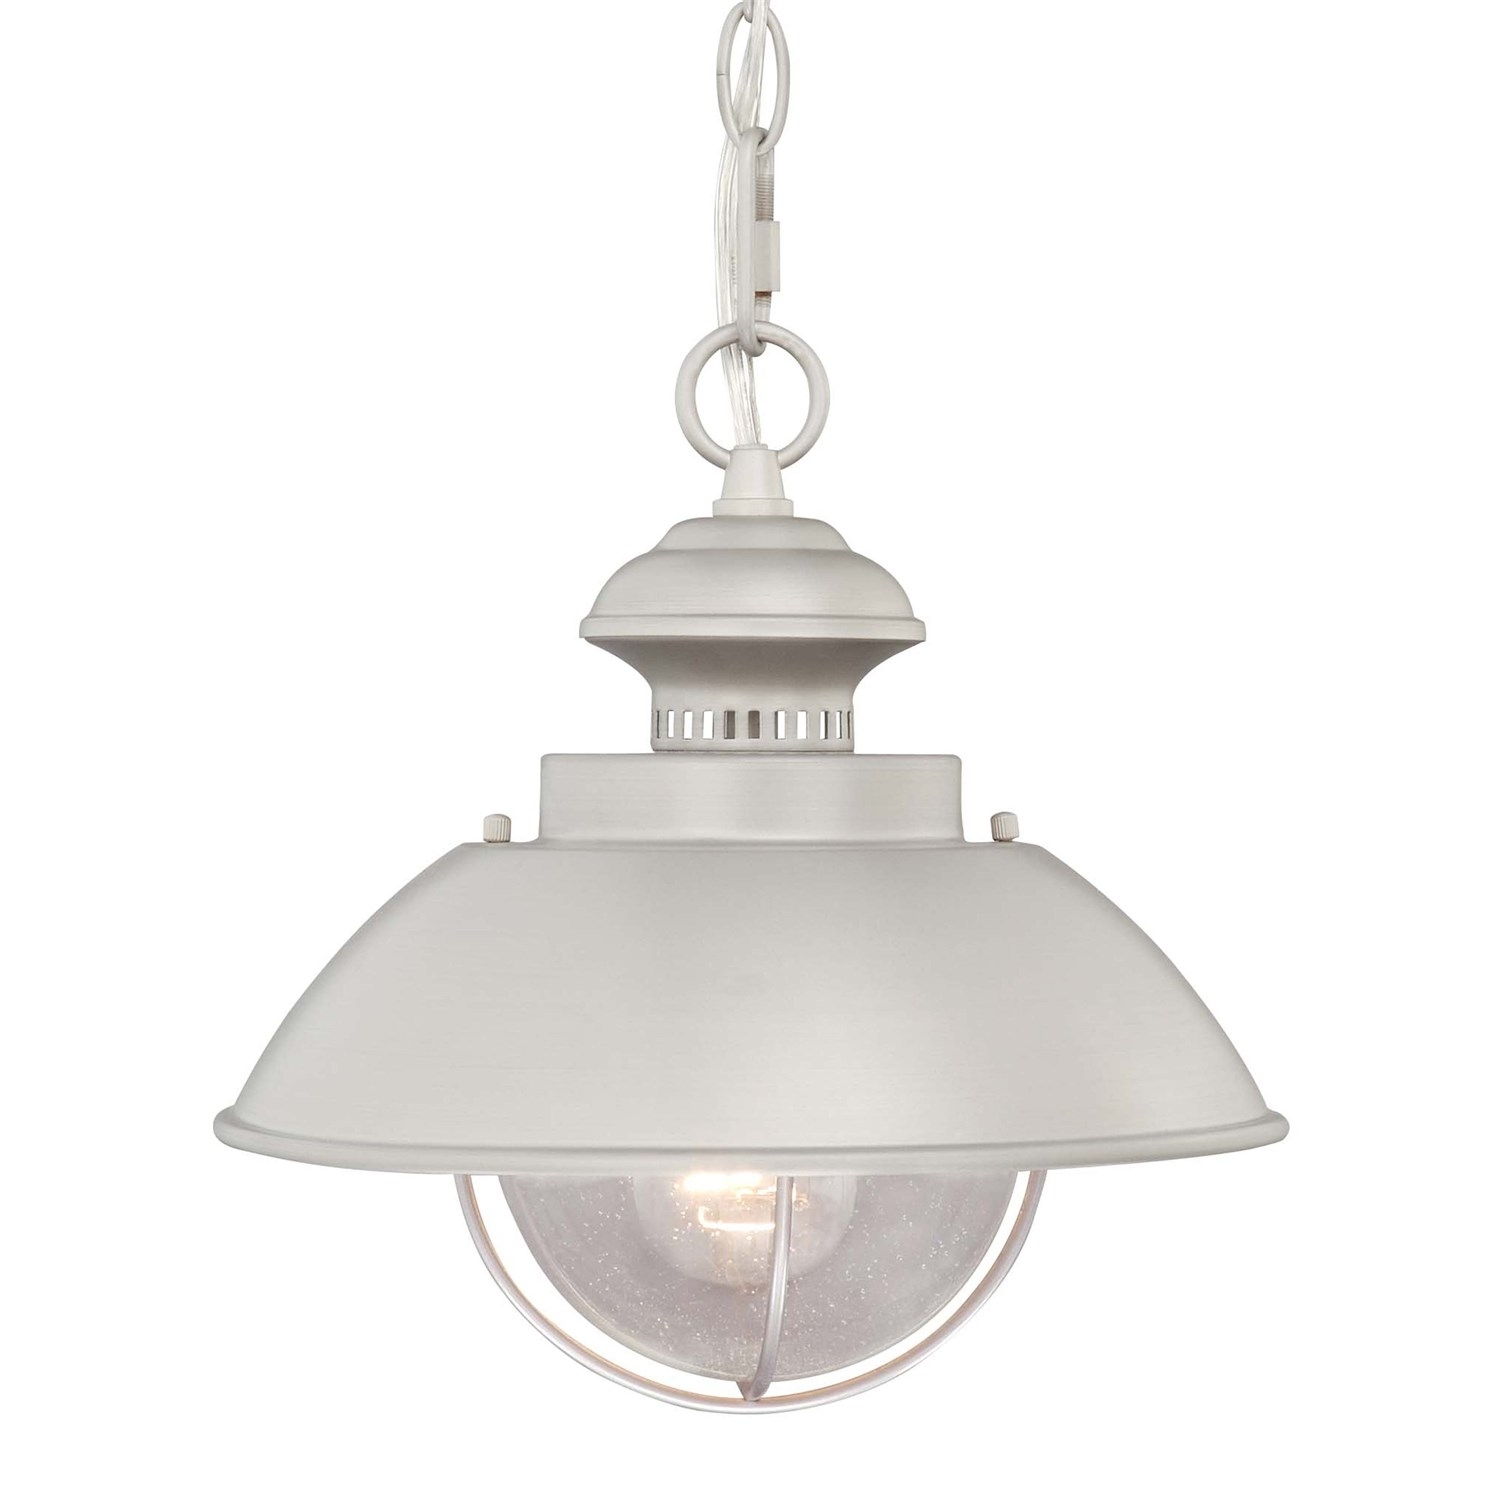 Outdoor Pendant Lighting Nautical – Spurinteractive Inside Nautical Outdoor Hanging Lights (View 10 of 15)